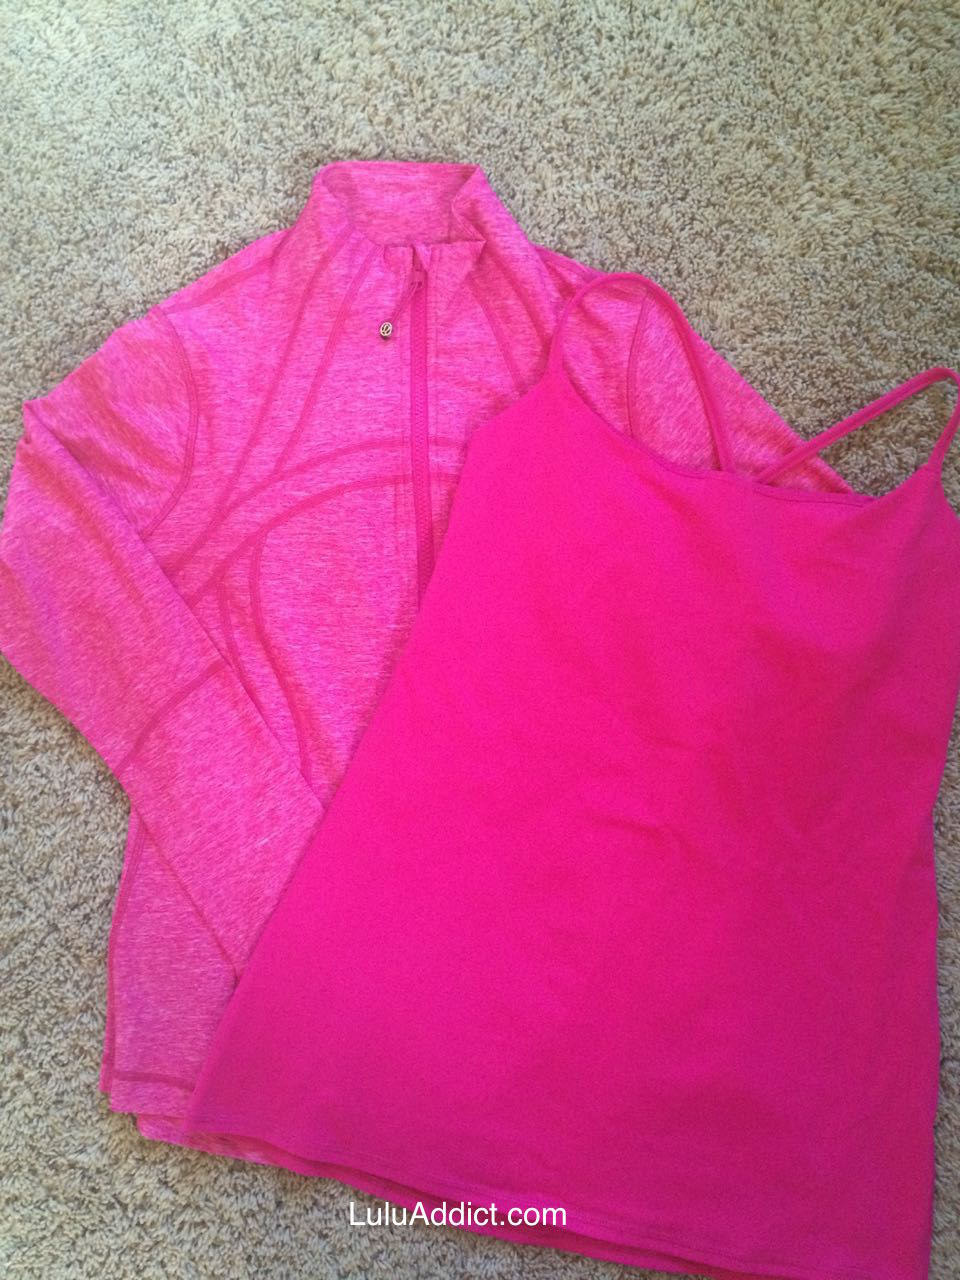 lululemon-jeweled-magenta-define-dancing-warrior-tank